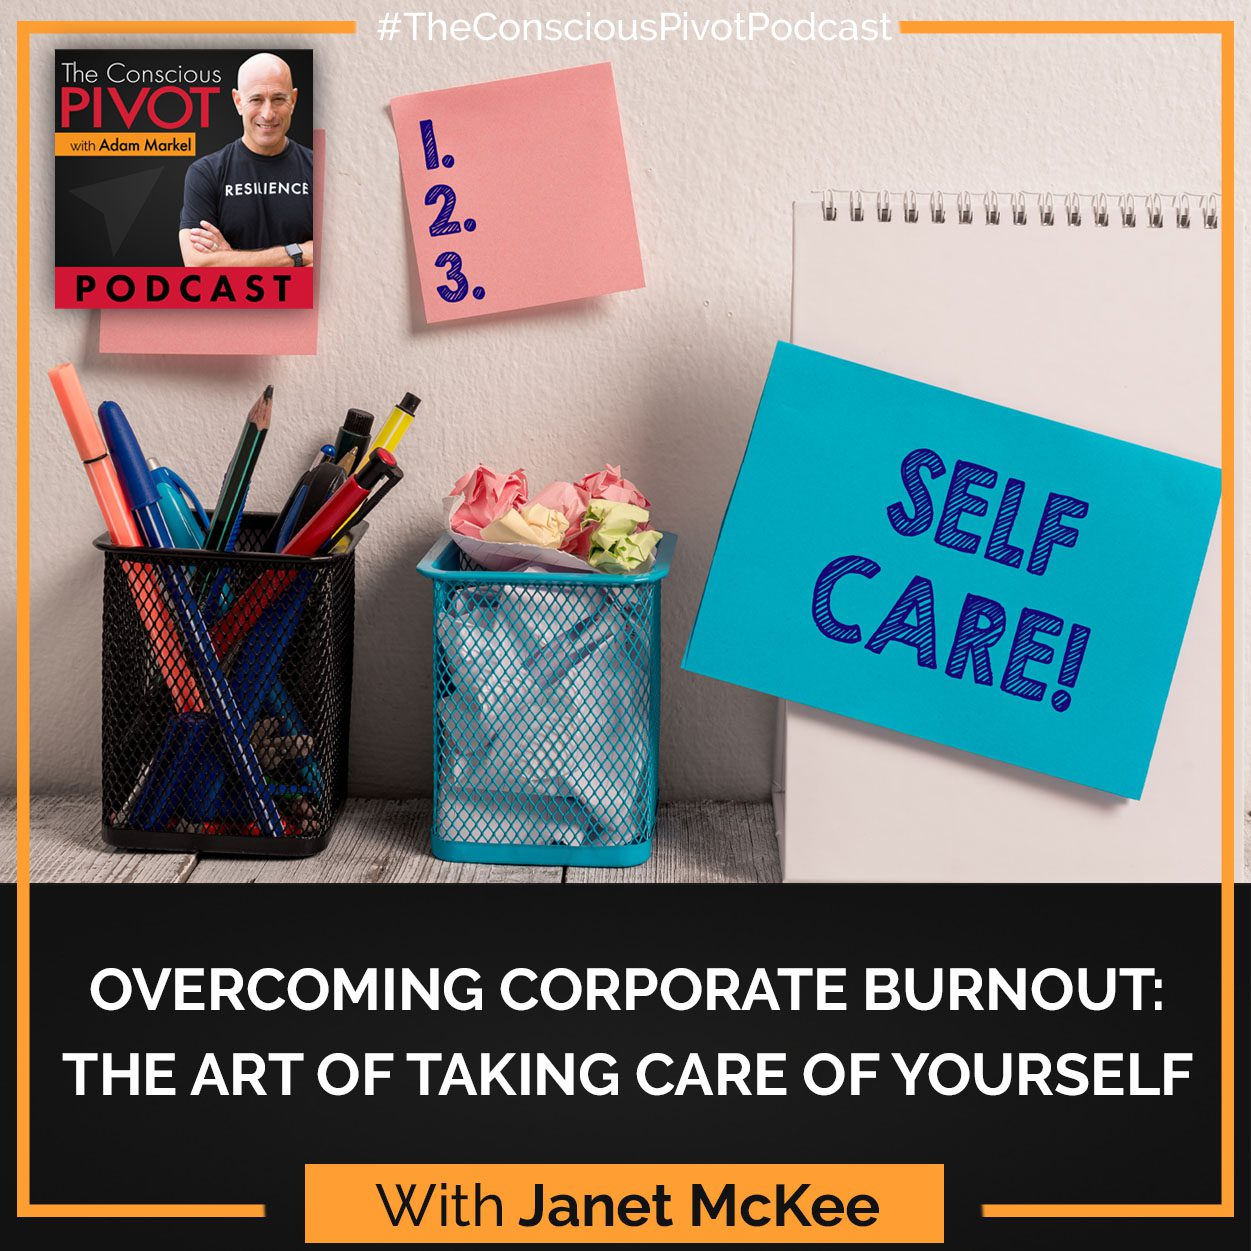 Overcoming Corporate Burnout: The Art Of Taking Care Of Yourself With Janet McKee